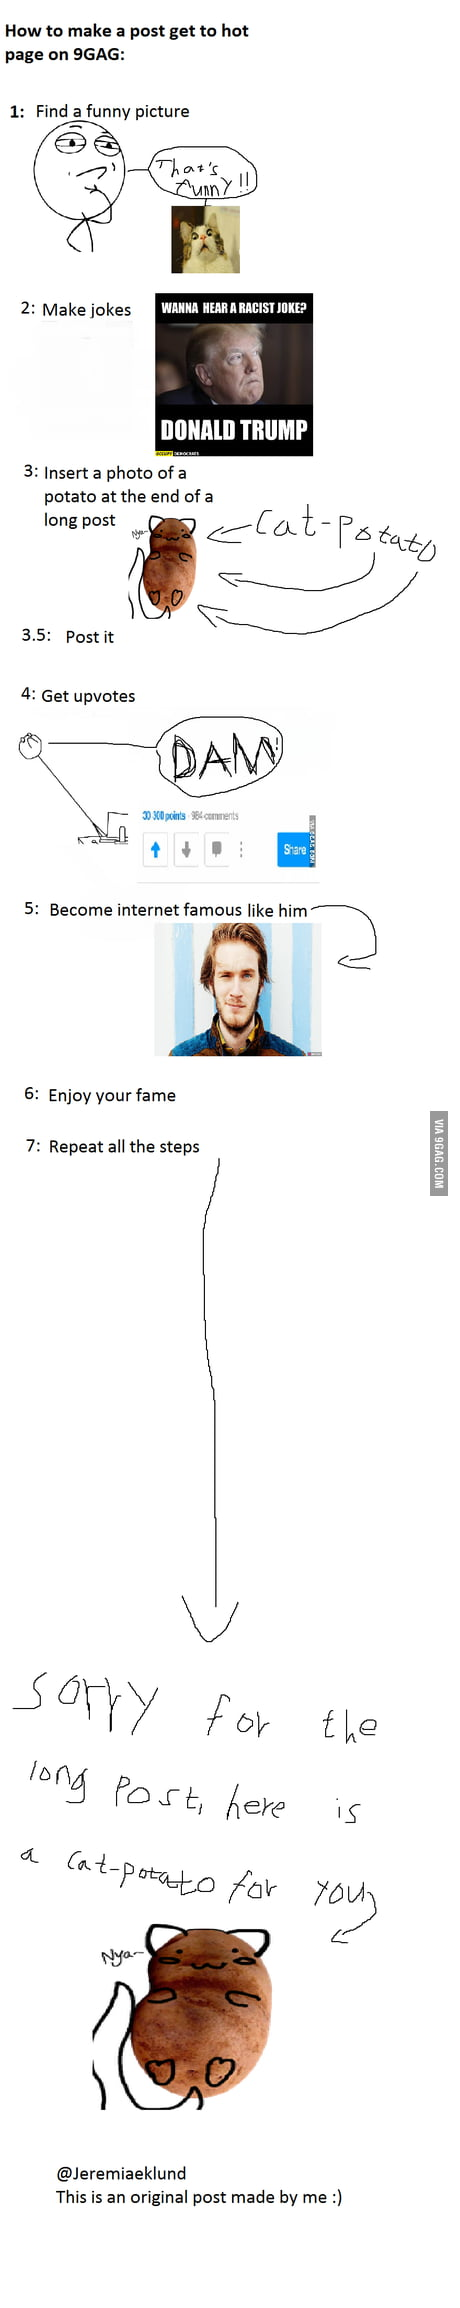 How To Get To Hot Page On 9GAG - 9GAG